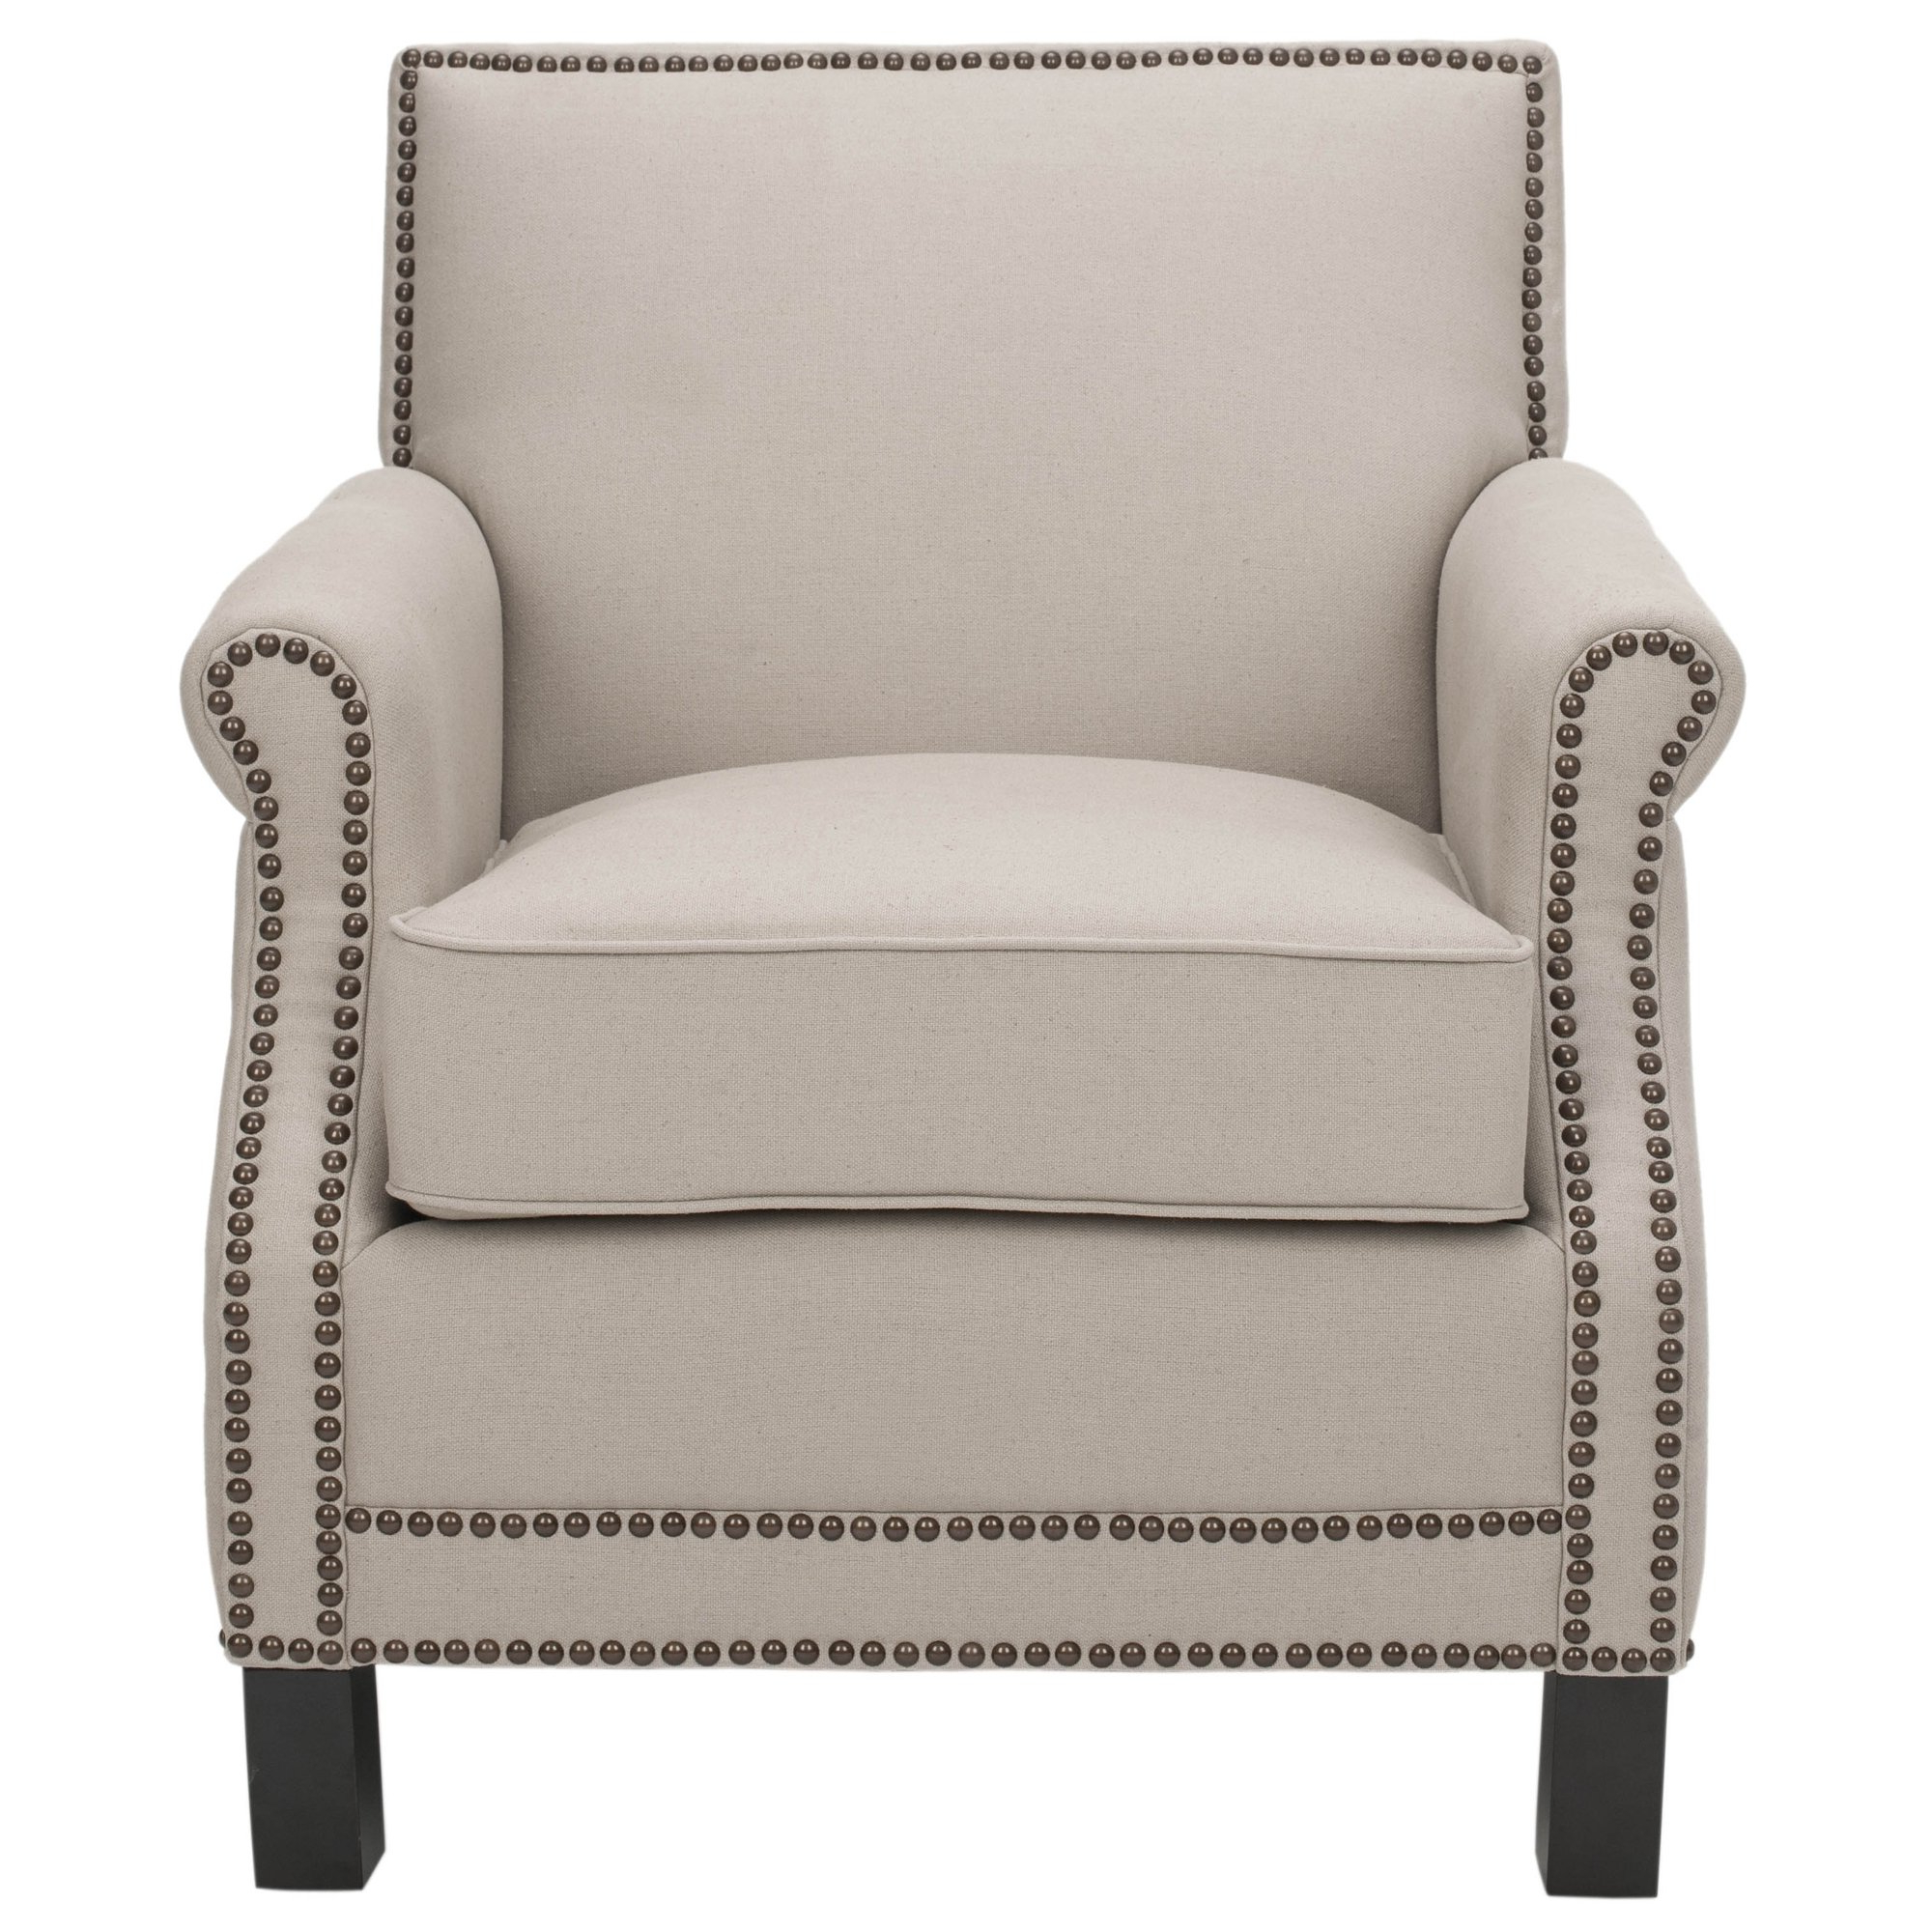 Mansfield Beige Linen Sofa Chairs Regarding 2018 Shop Safavieh Mansfield Beige Club Chair – Free Shipping Today (View 5 of 20)